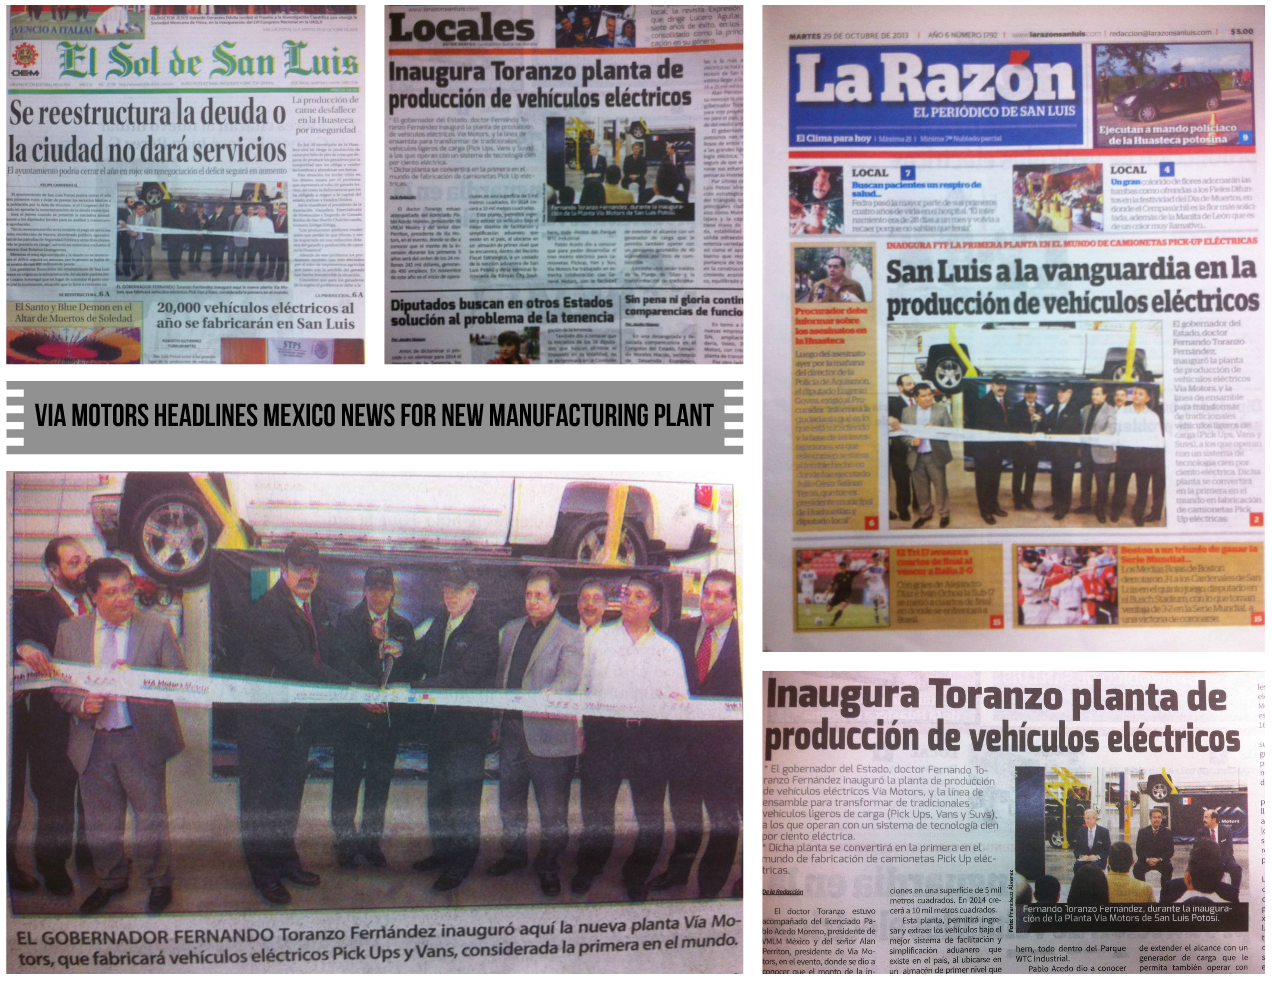 VIA Motors FRONT page headline news for ribbon cutting with San Luis Potosí Governor Dr. Fernando Toranzo Fernandez for the launch of VIA Motors-Mexico's new manufacturing plant for extended-range electric trucks, vans and SUV's! http://www.larazonsanluis.com/index.php/local/item/8820-inaugura-toranzo-planta-de-producción-de-vehículos-eléctricos #vehiculoselectricos #electricosvehiculos #electricvehicleplant #viamotorsmexico #electricvehicles